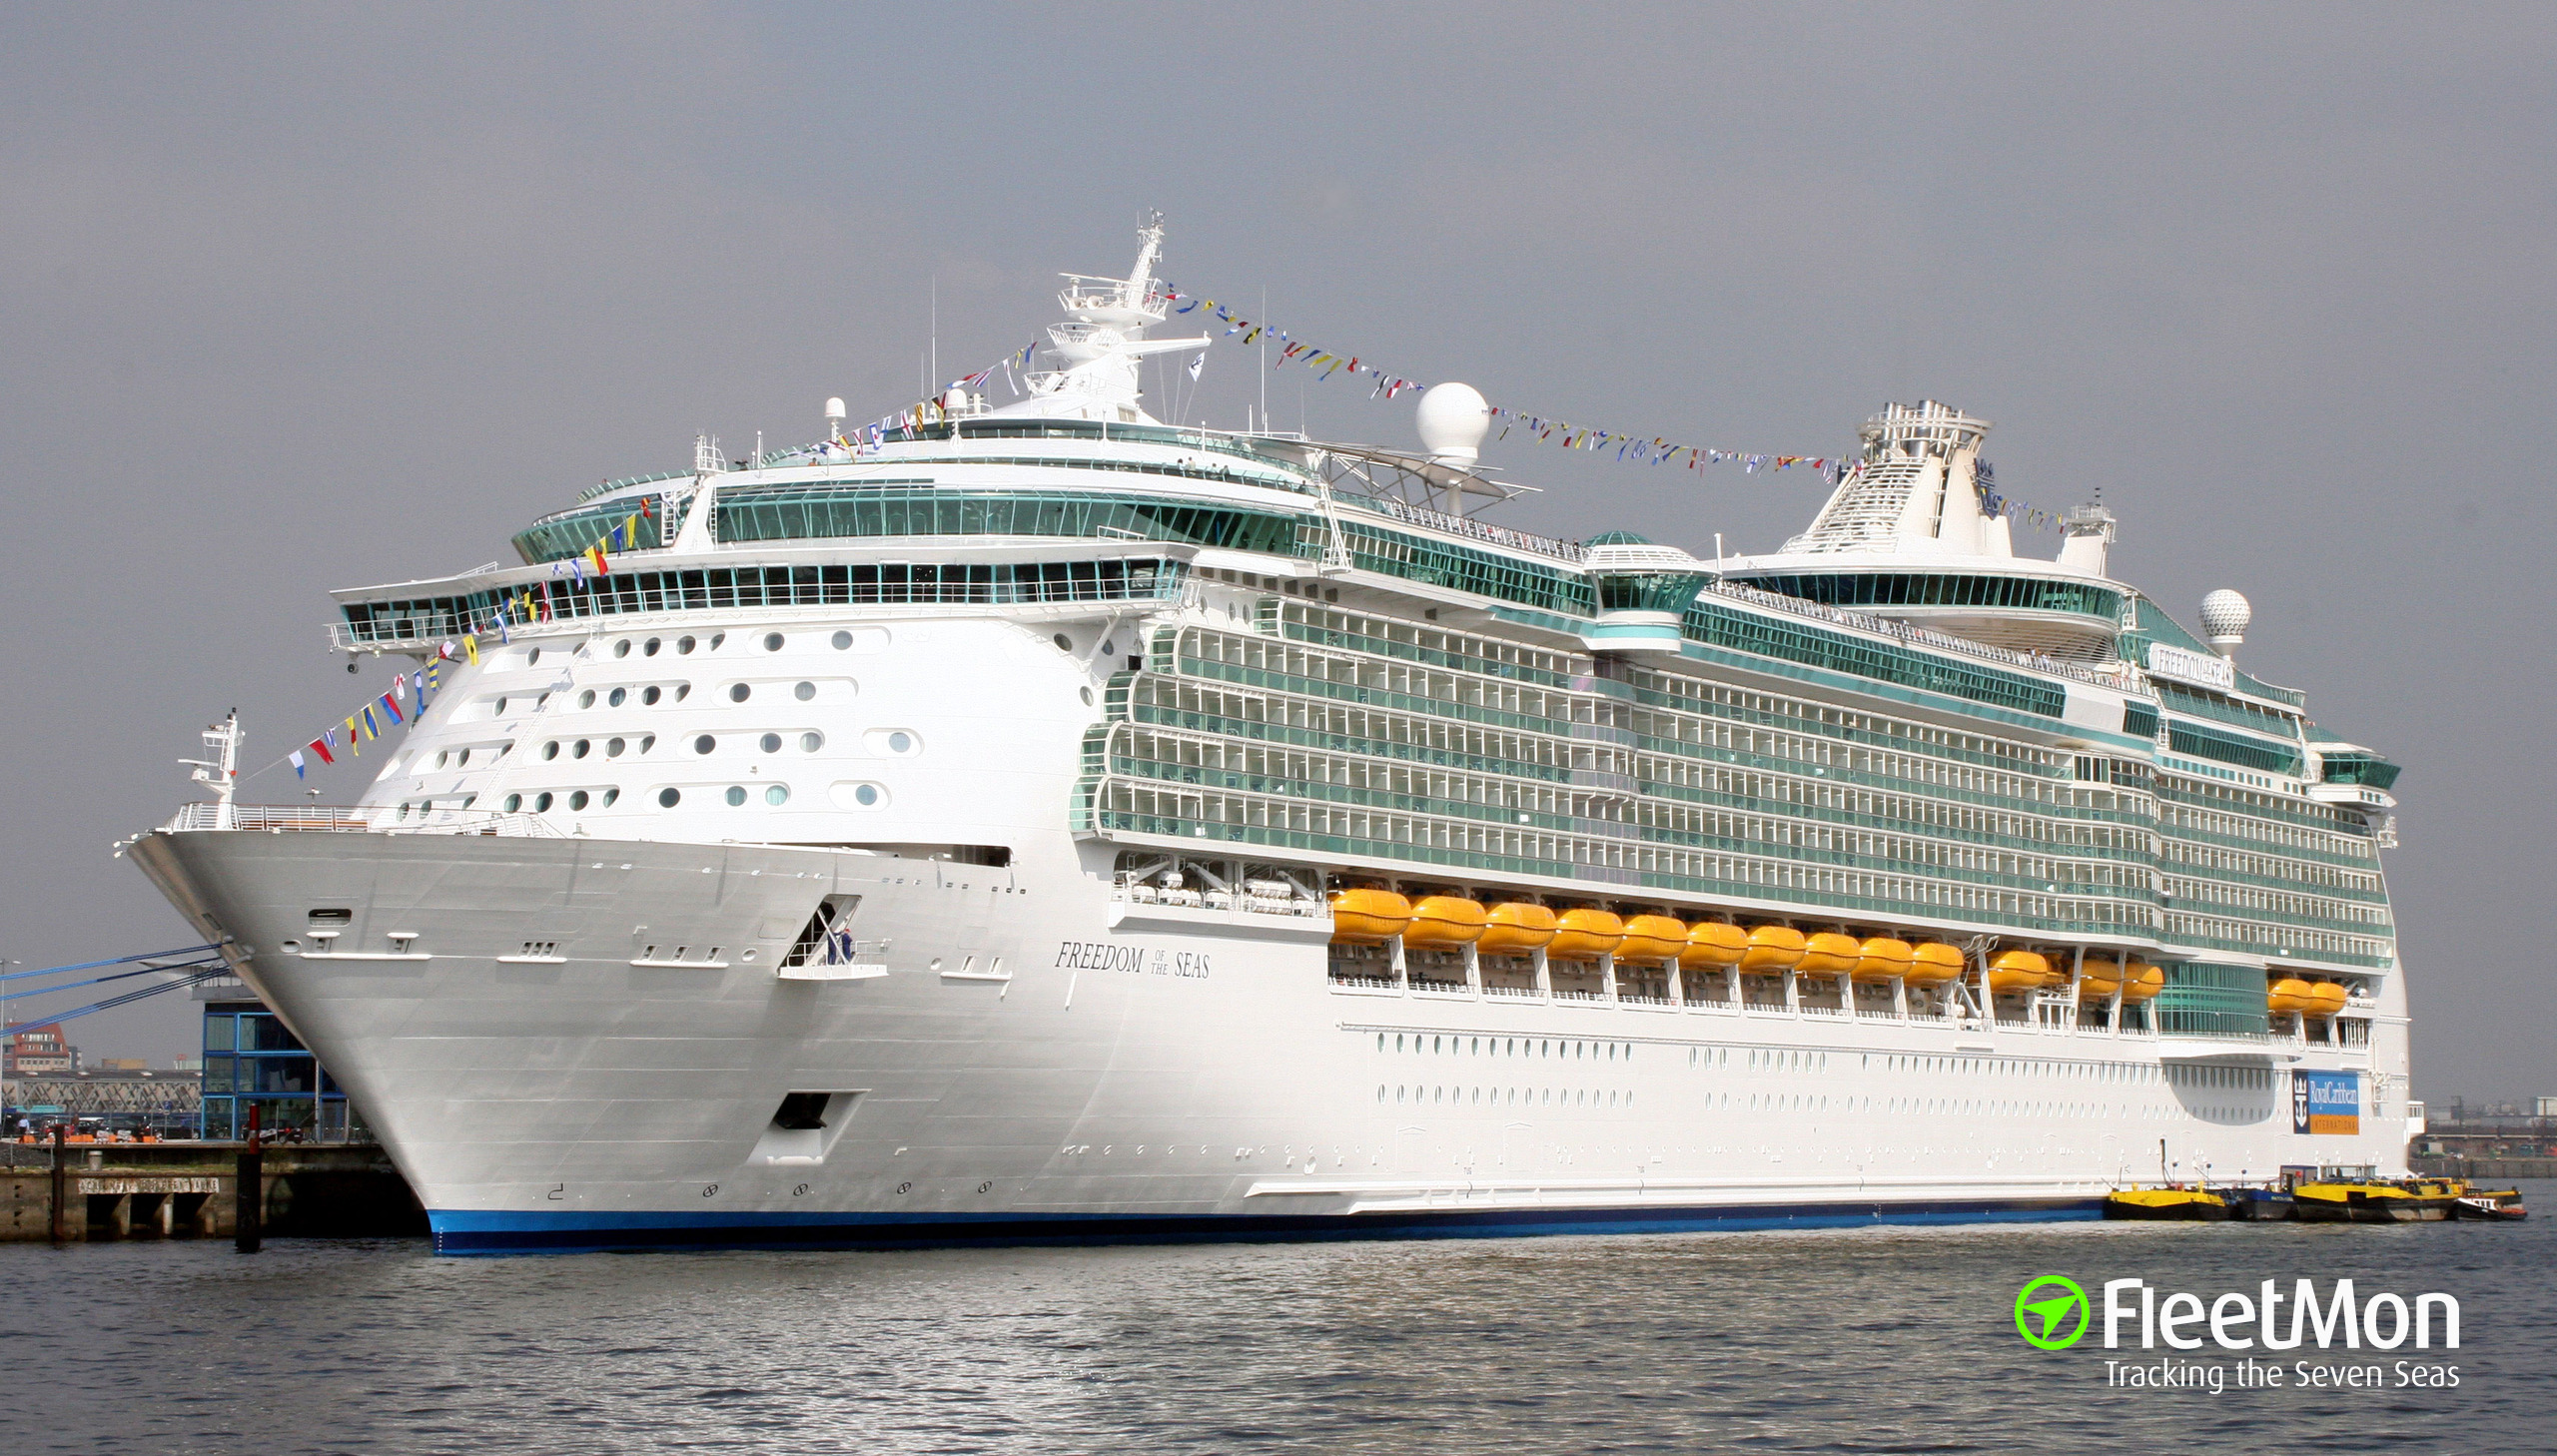 freedom of the seas route